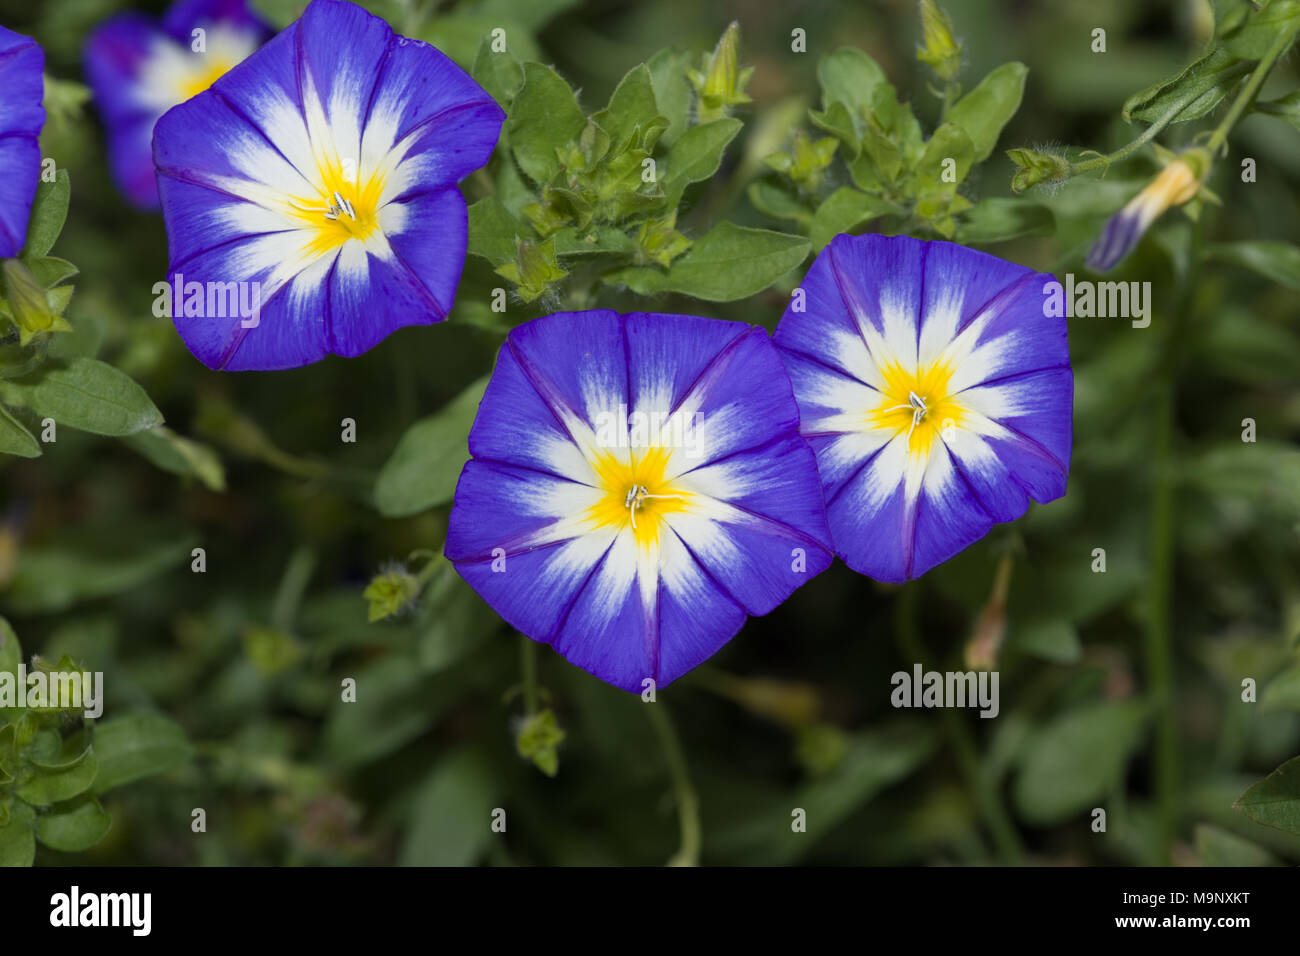 Dwarf morning-glory, Blåvinda (Convolvulus tricolor) - Stock Image